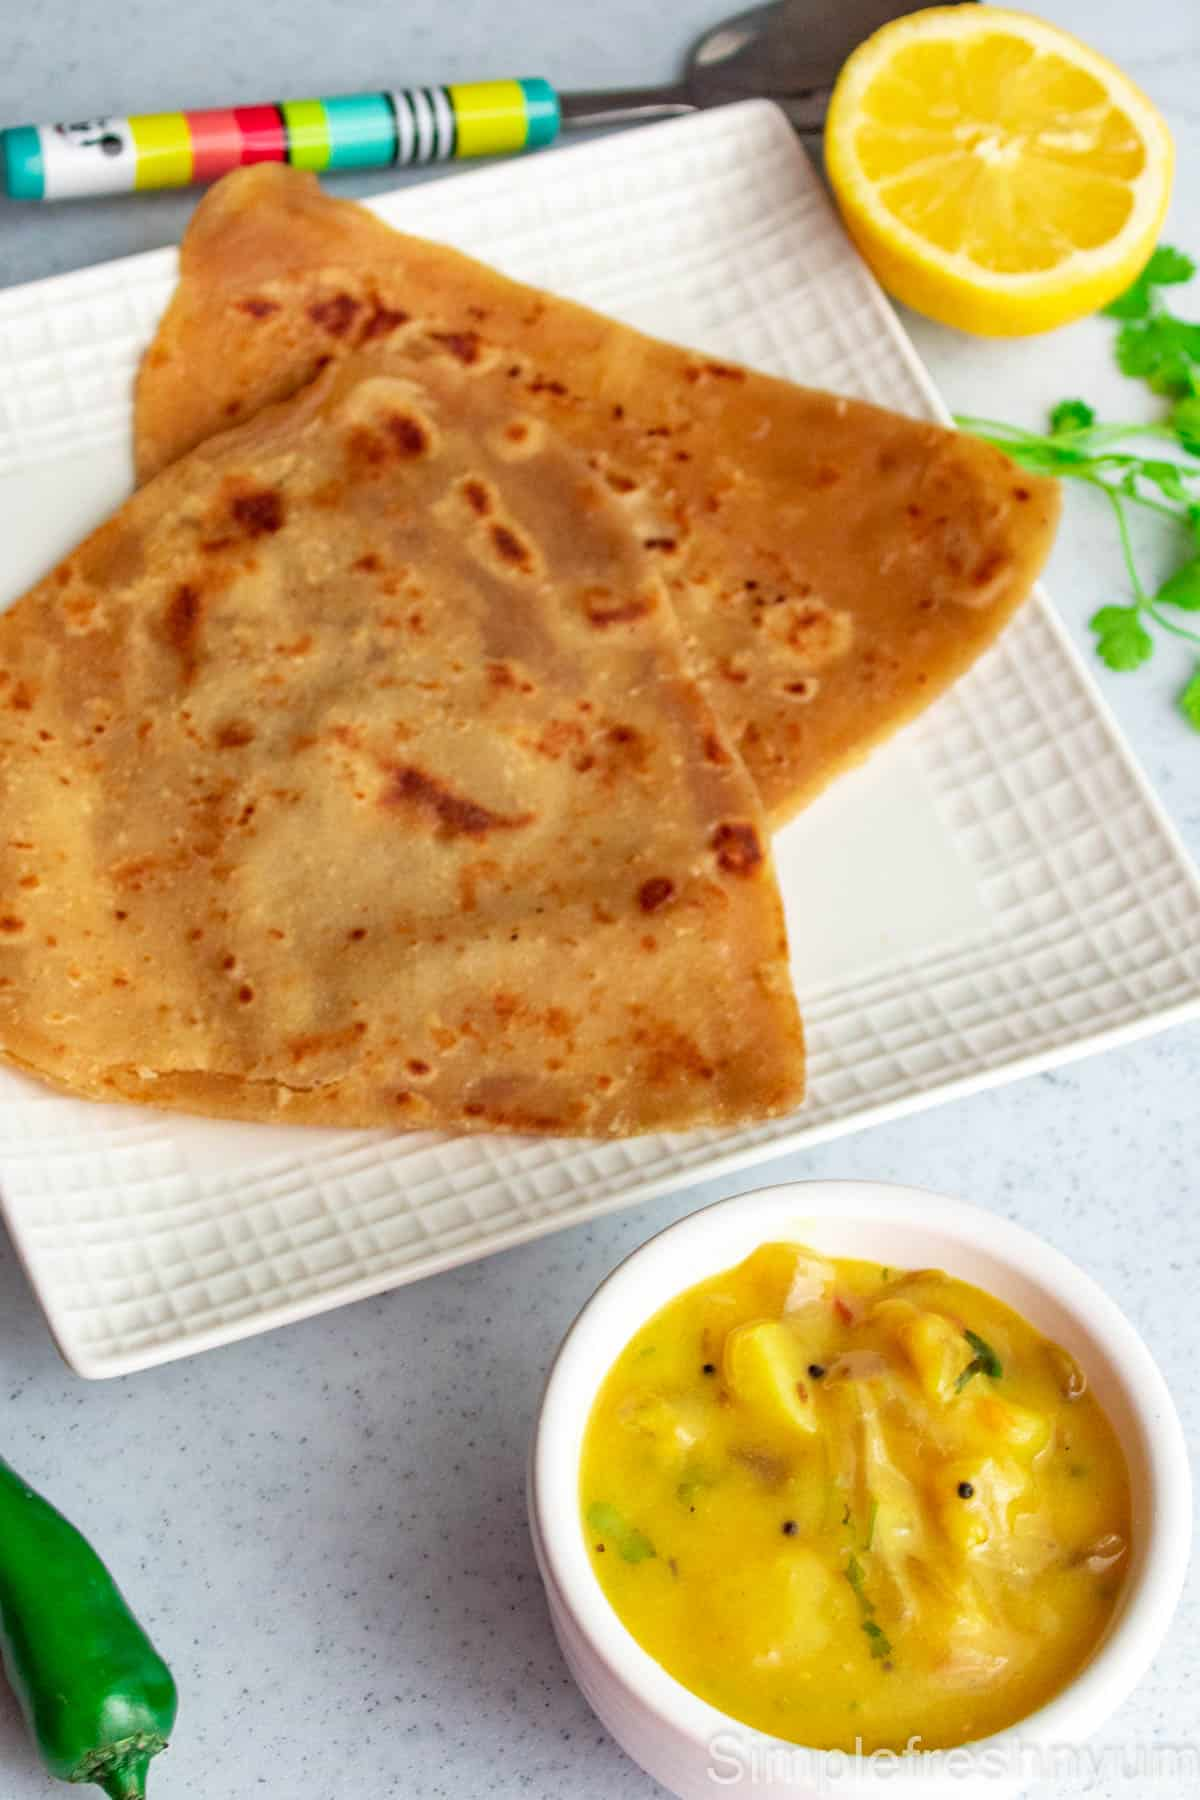 Two chapathi served in a white square plate with a white bowl of bombay chutney on the side and half lemon, an jalapeno and cilantro are on the sides too.